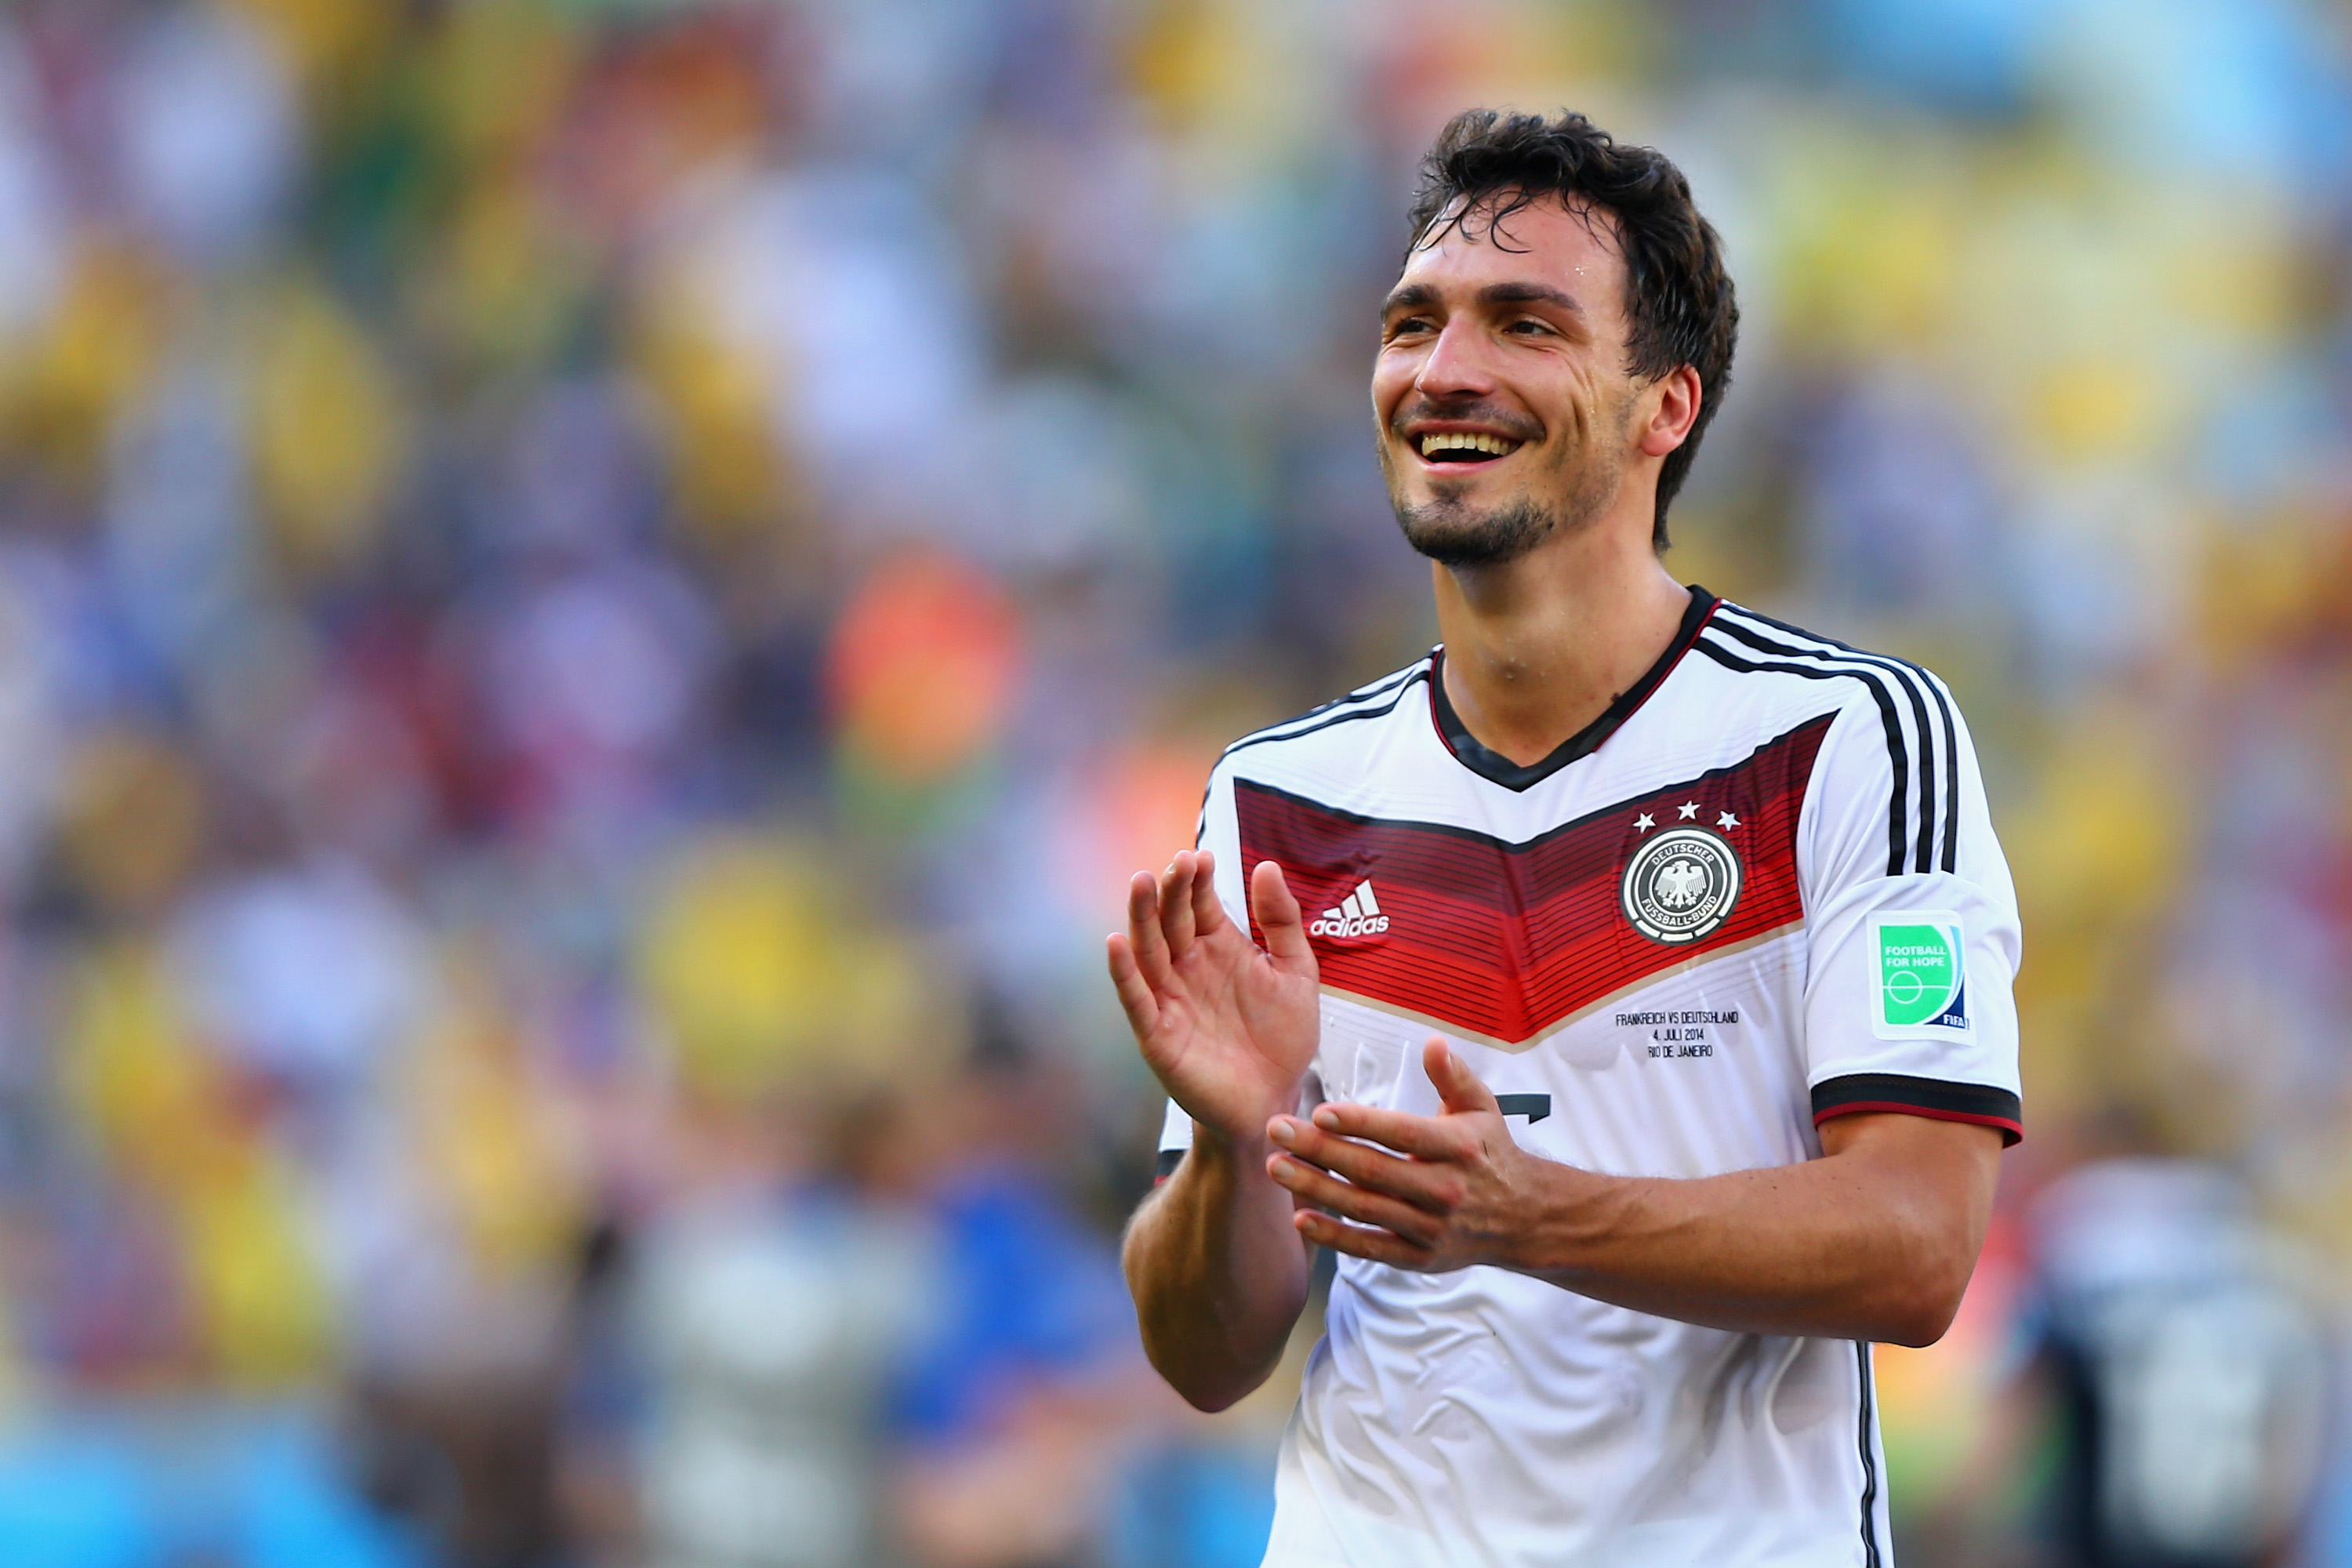 RIO DE JANEIRO, BRAZIL - JULY 04:  Mats Hummels of Germany acknowledges the fans after defeating France 1-0 in the 2014 FIFA World Cup Brazil Quarter Final match between France and Germany at Maracana on July 4, 2014 in Rio de Janeiro, Brazil.  (Photo by Martin Rose/Getty Images)